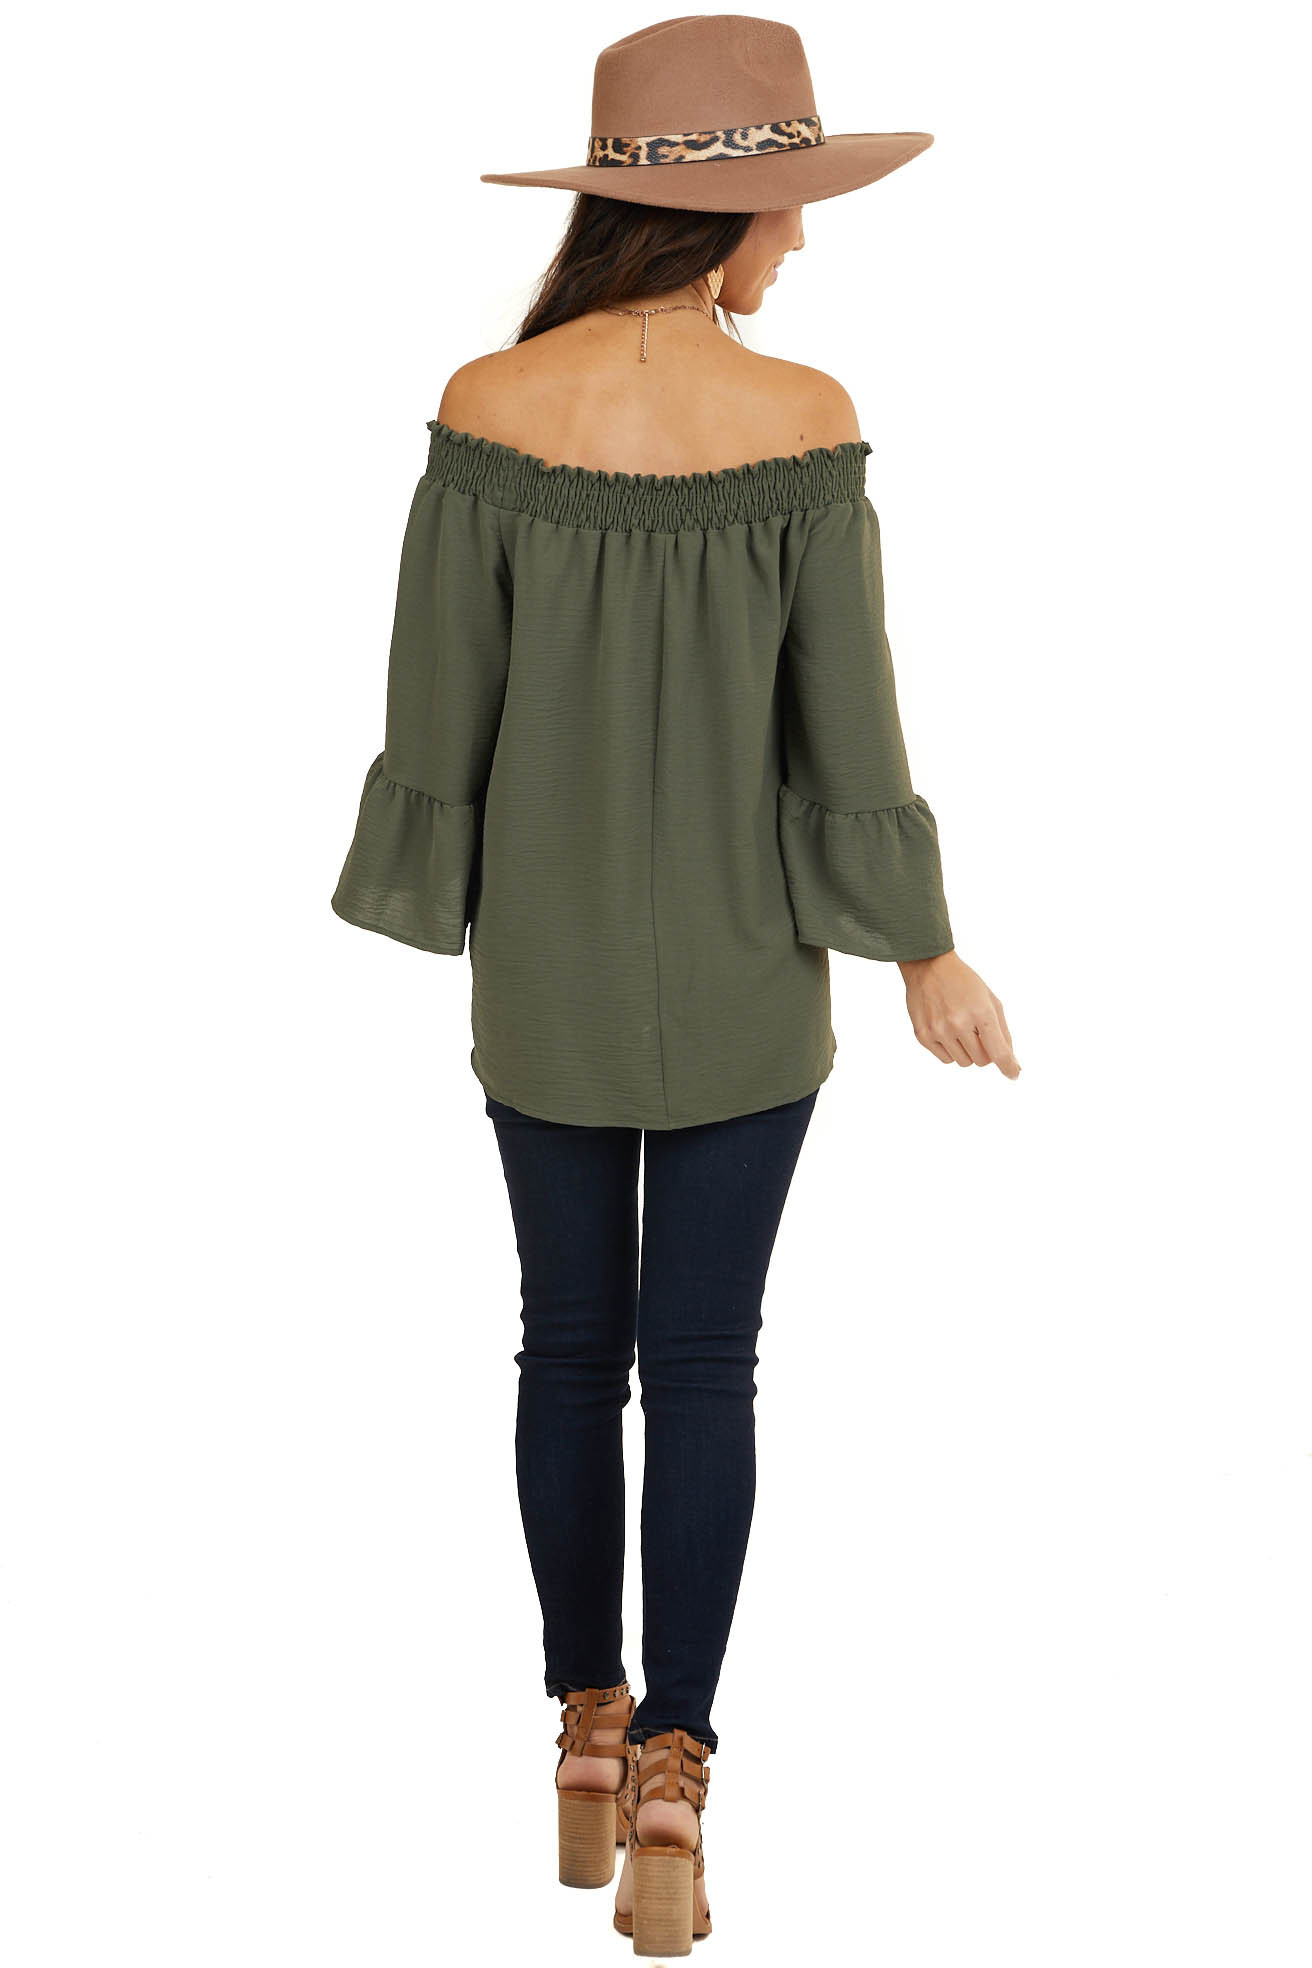 Hunter Green Smocked Off Shoulder Top with Ruffle Sleeve Hem